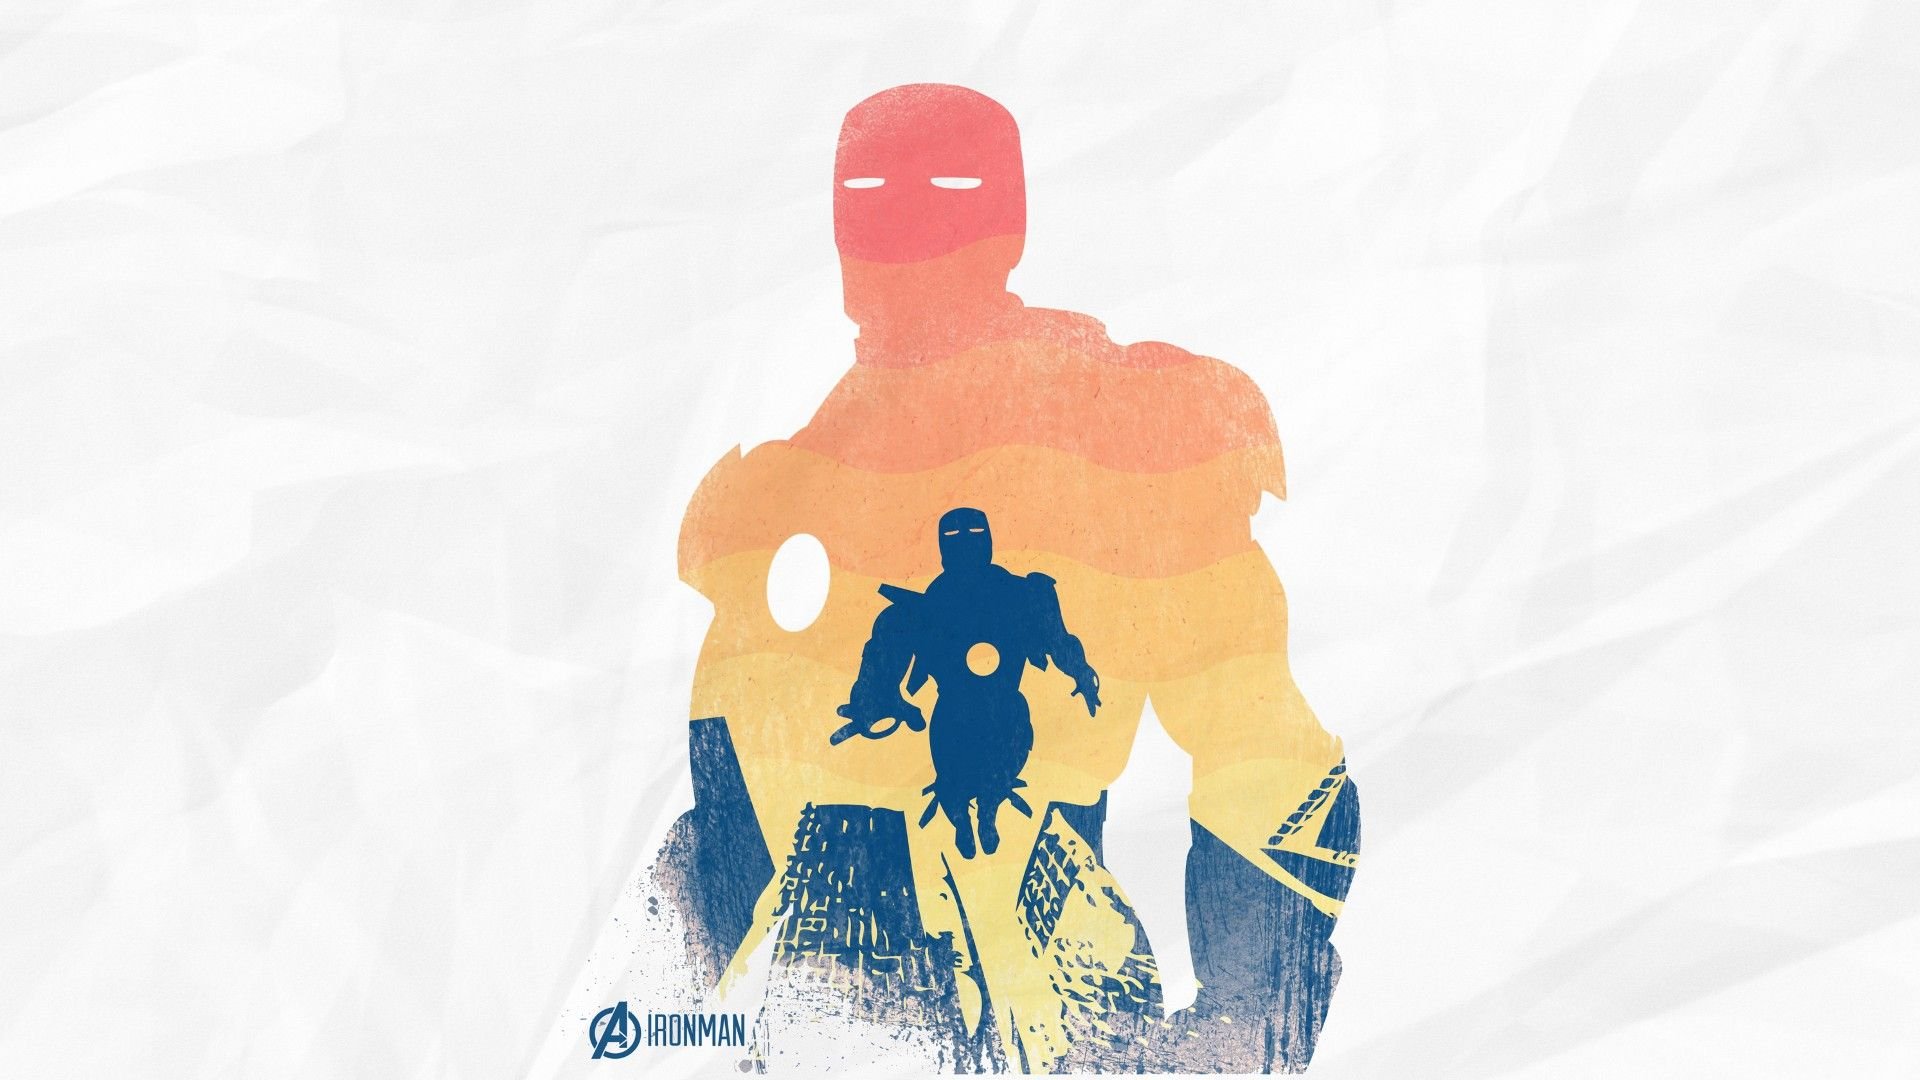 cool wallpaper with iron man mask in close up and dark background